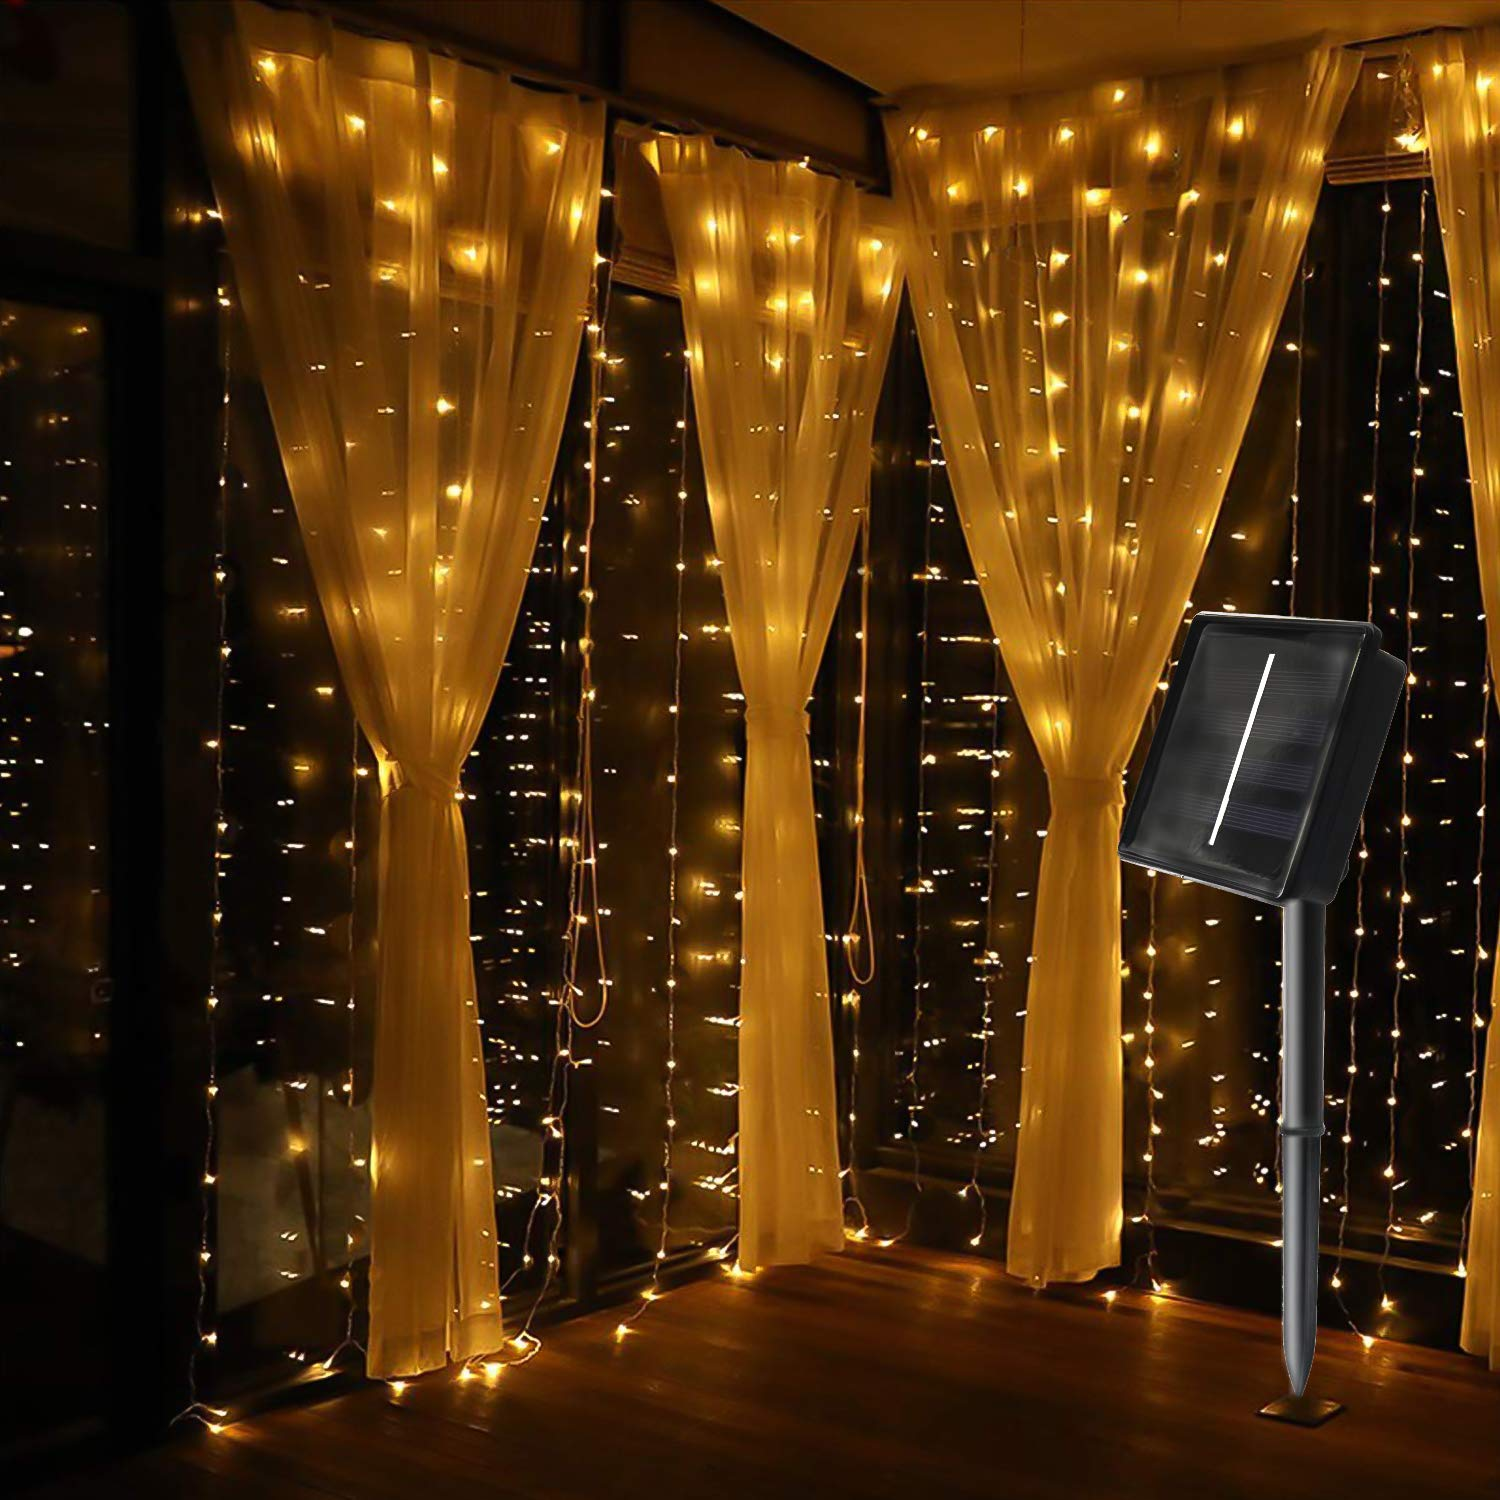 Yard Flower Sheds Tree MagicLux Tech 300 LED Solar Curtain String Lights 8 Mode Decorations for Window Garden Fences Christmas Holiday Patio Party Pavilions Wedding Outdoor Indoor Walls